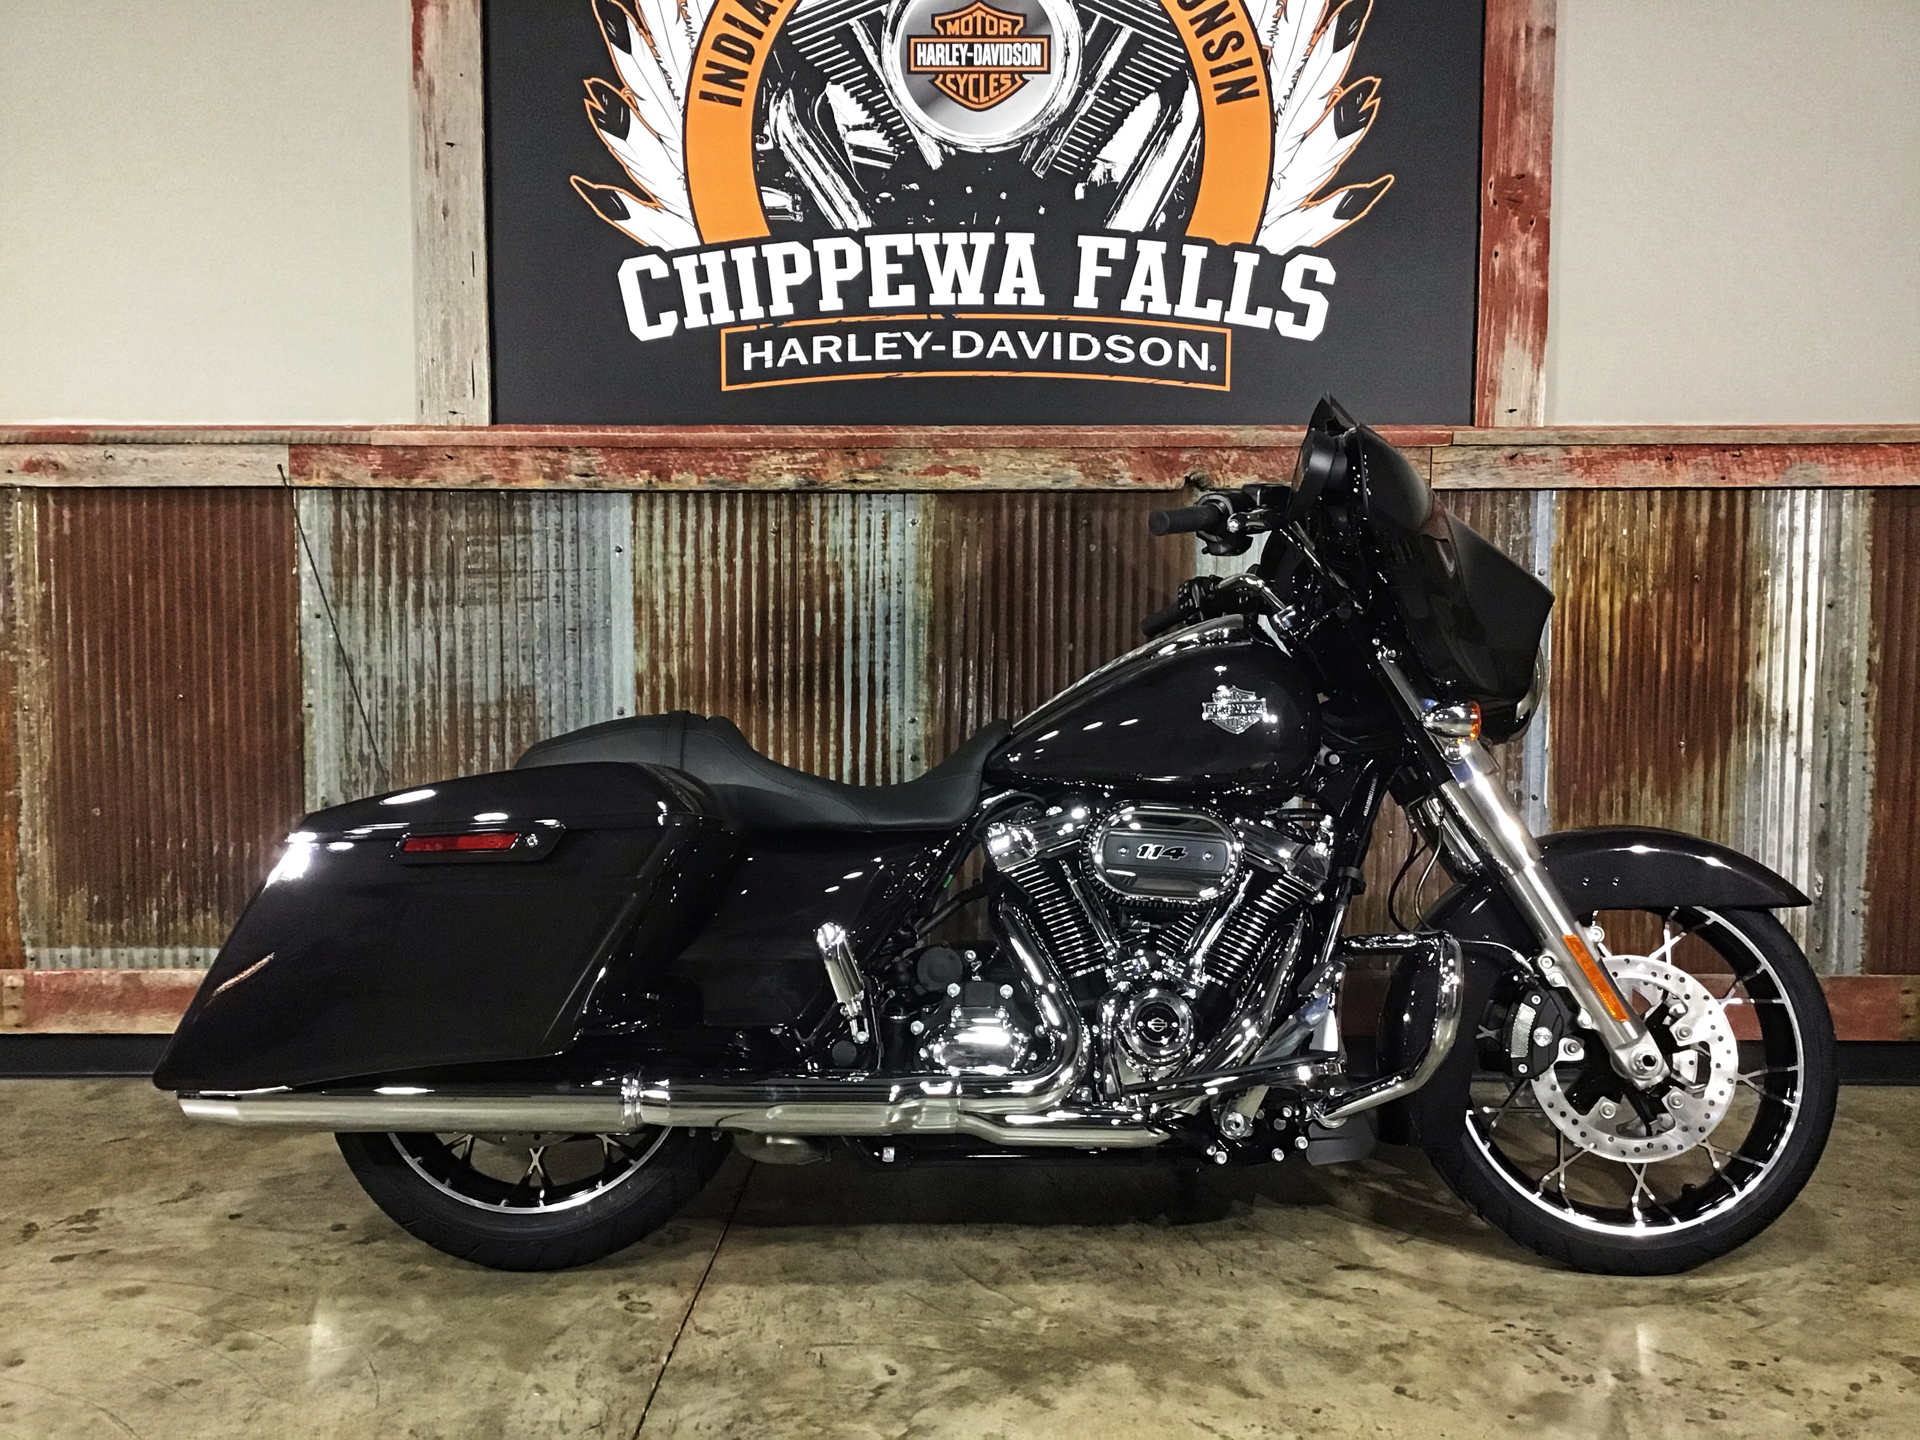 2021 Harley-Davidson Street Glide® Special in Chippewa Falls, Wisconsin - Photo 1